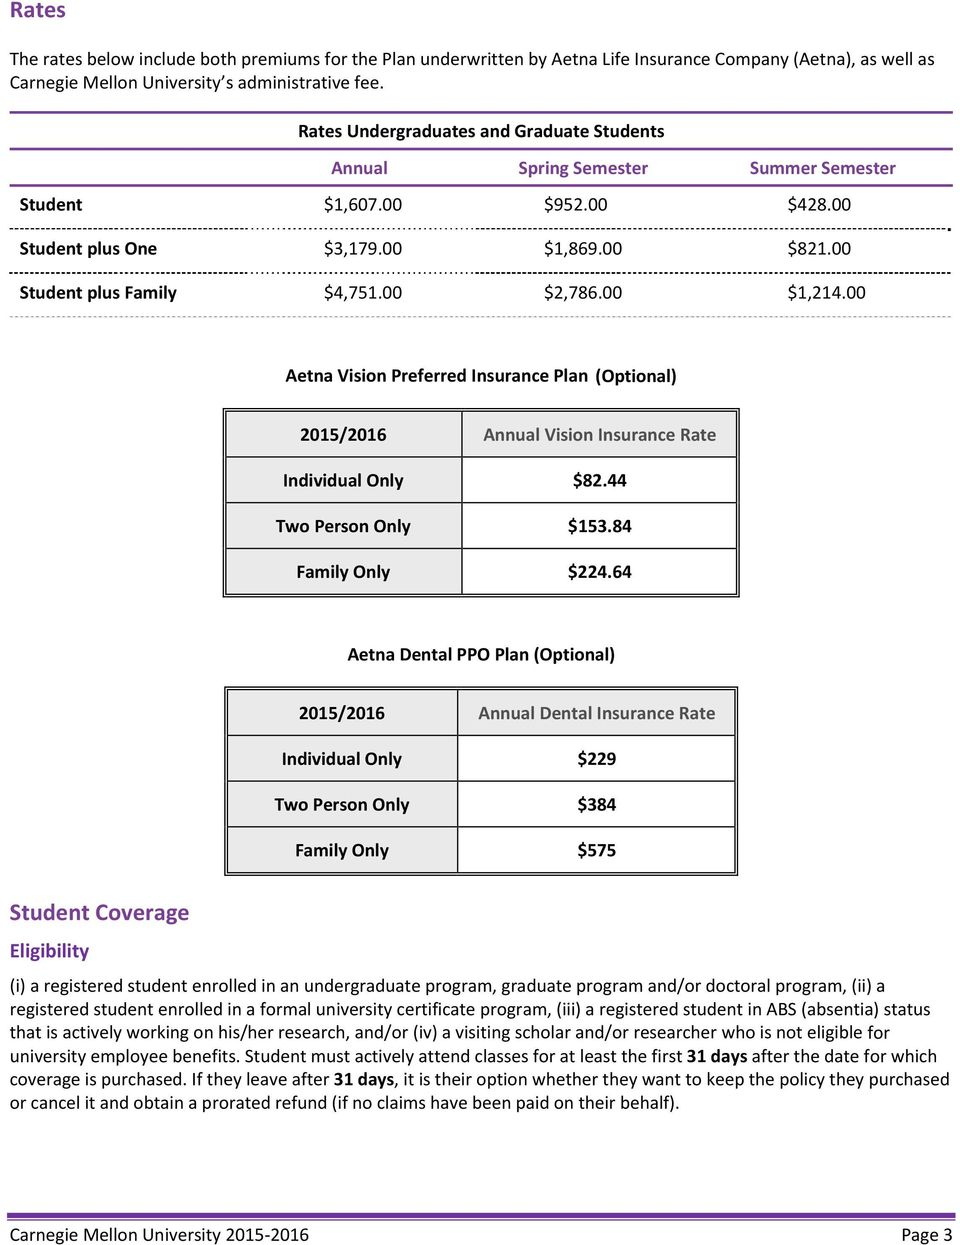 Aetna Student Health Plan Design and Benefits Summary Carnegie